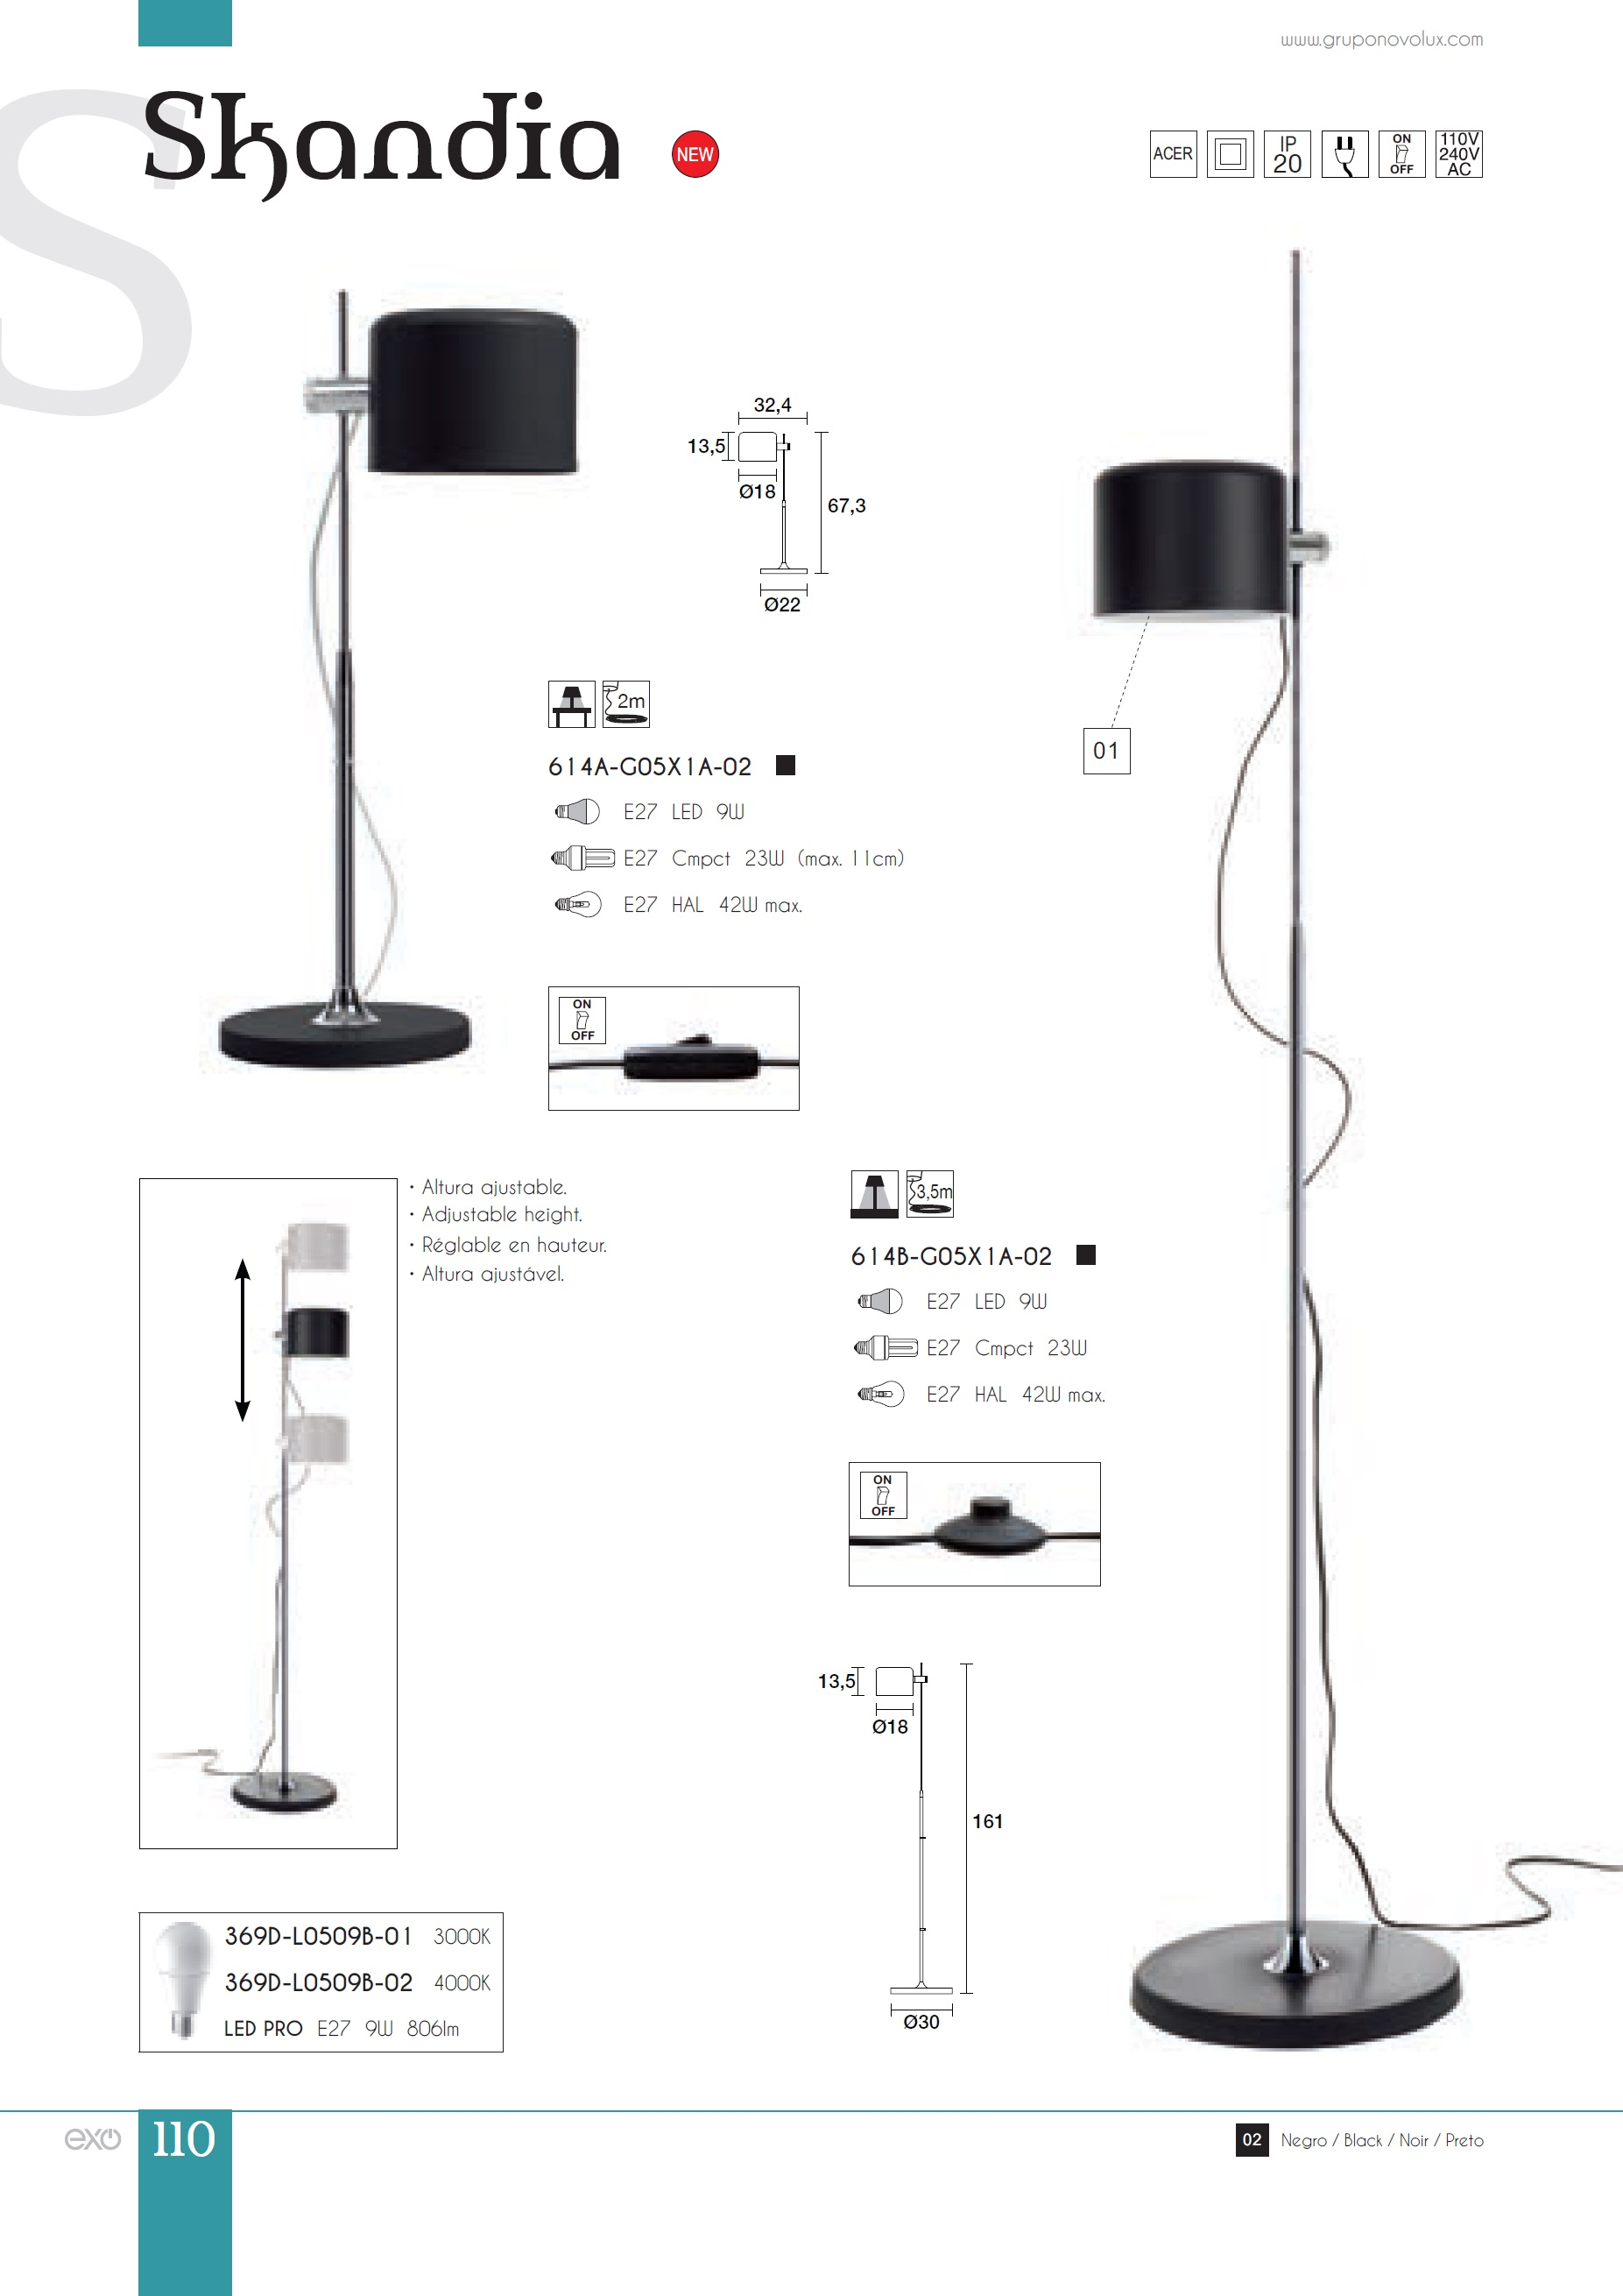 Exo lighting skandia l mpara de pie lectura 161cm 614b - Lamparas de pie lectura ...